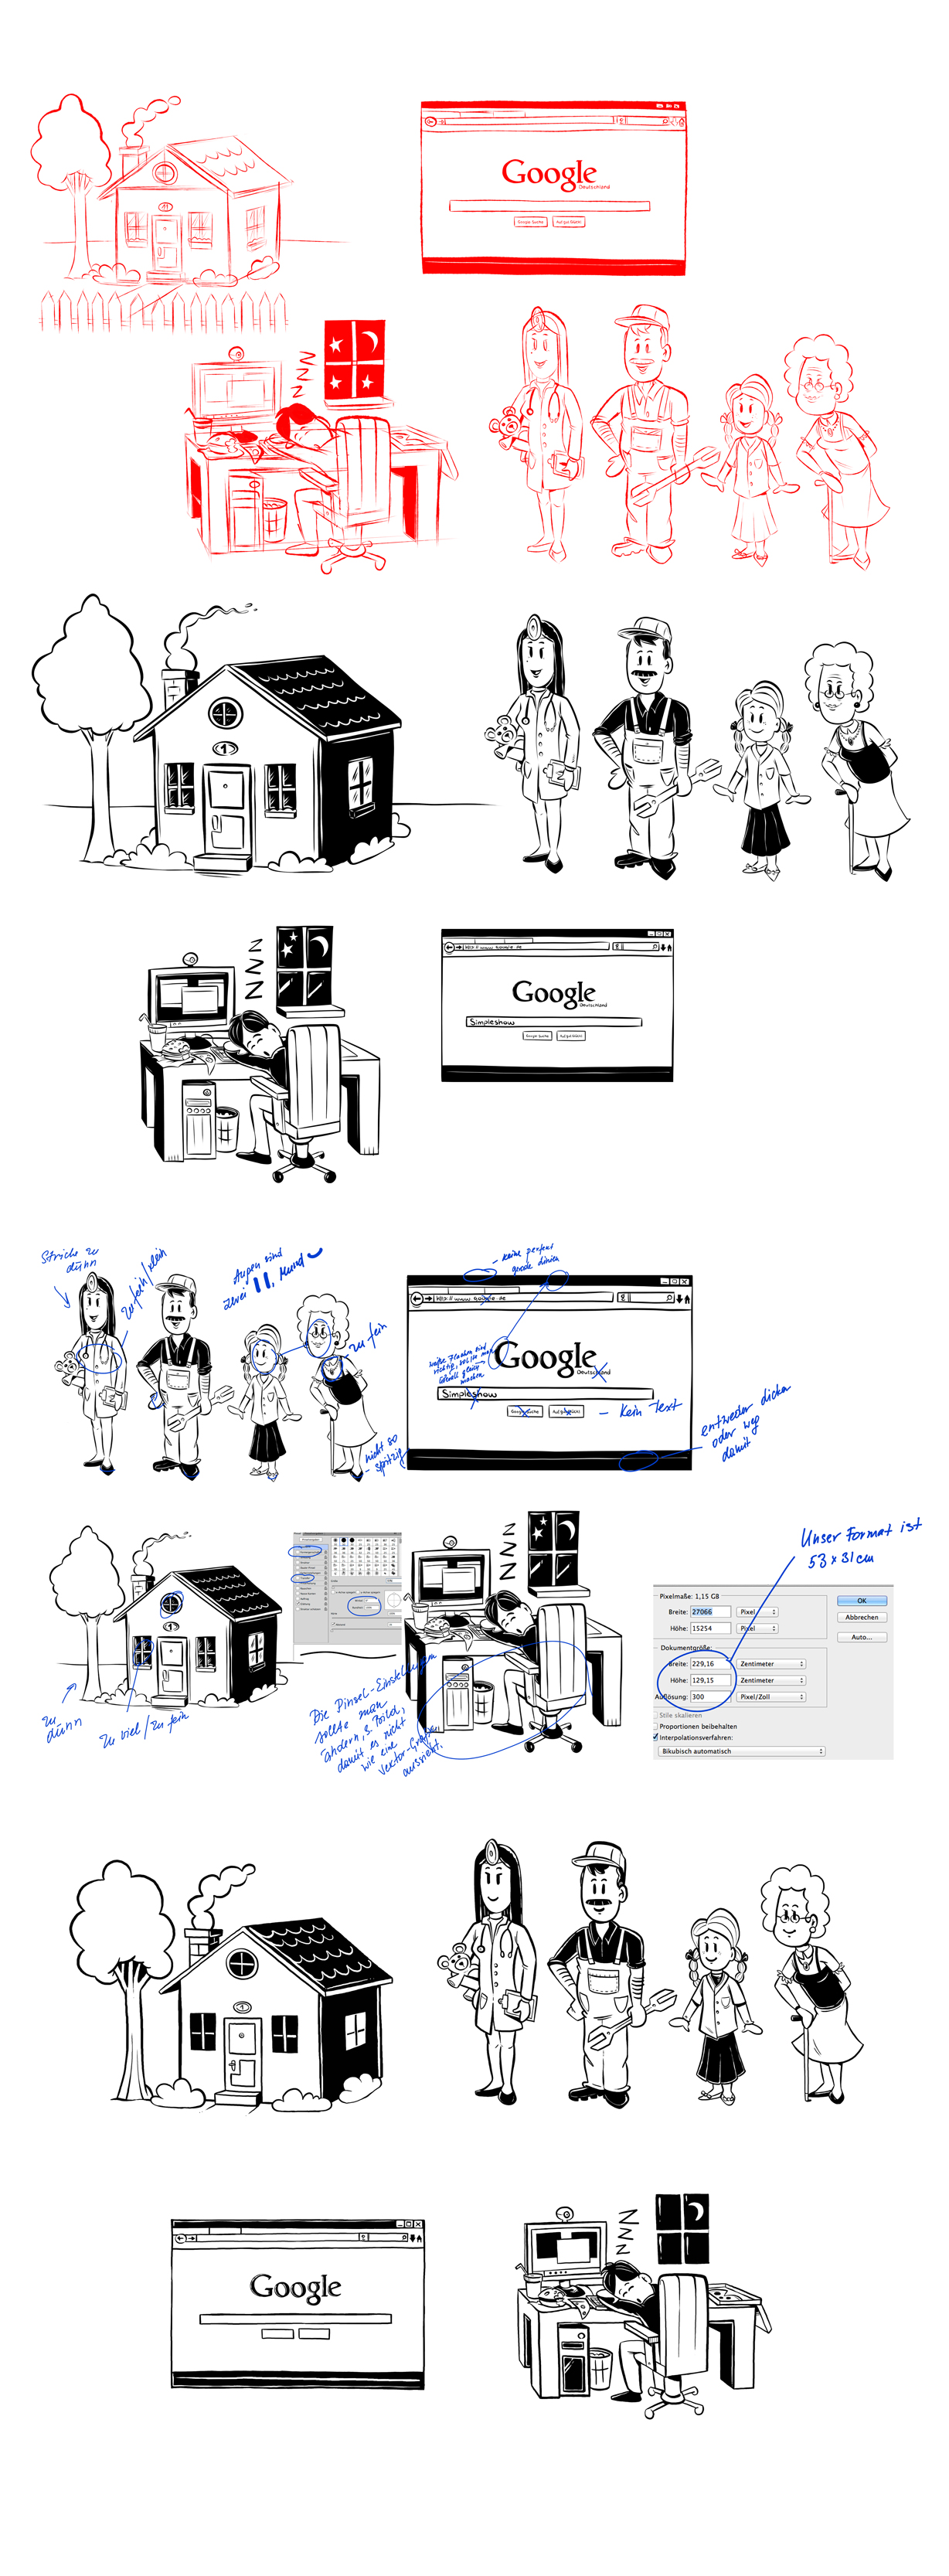 Simpleshow Application Test Drawings by Themrock on DeviantArt